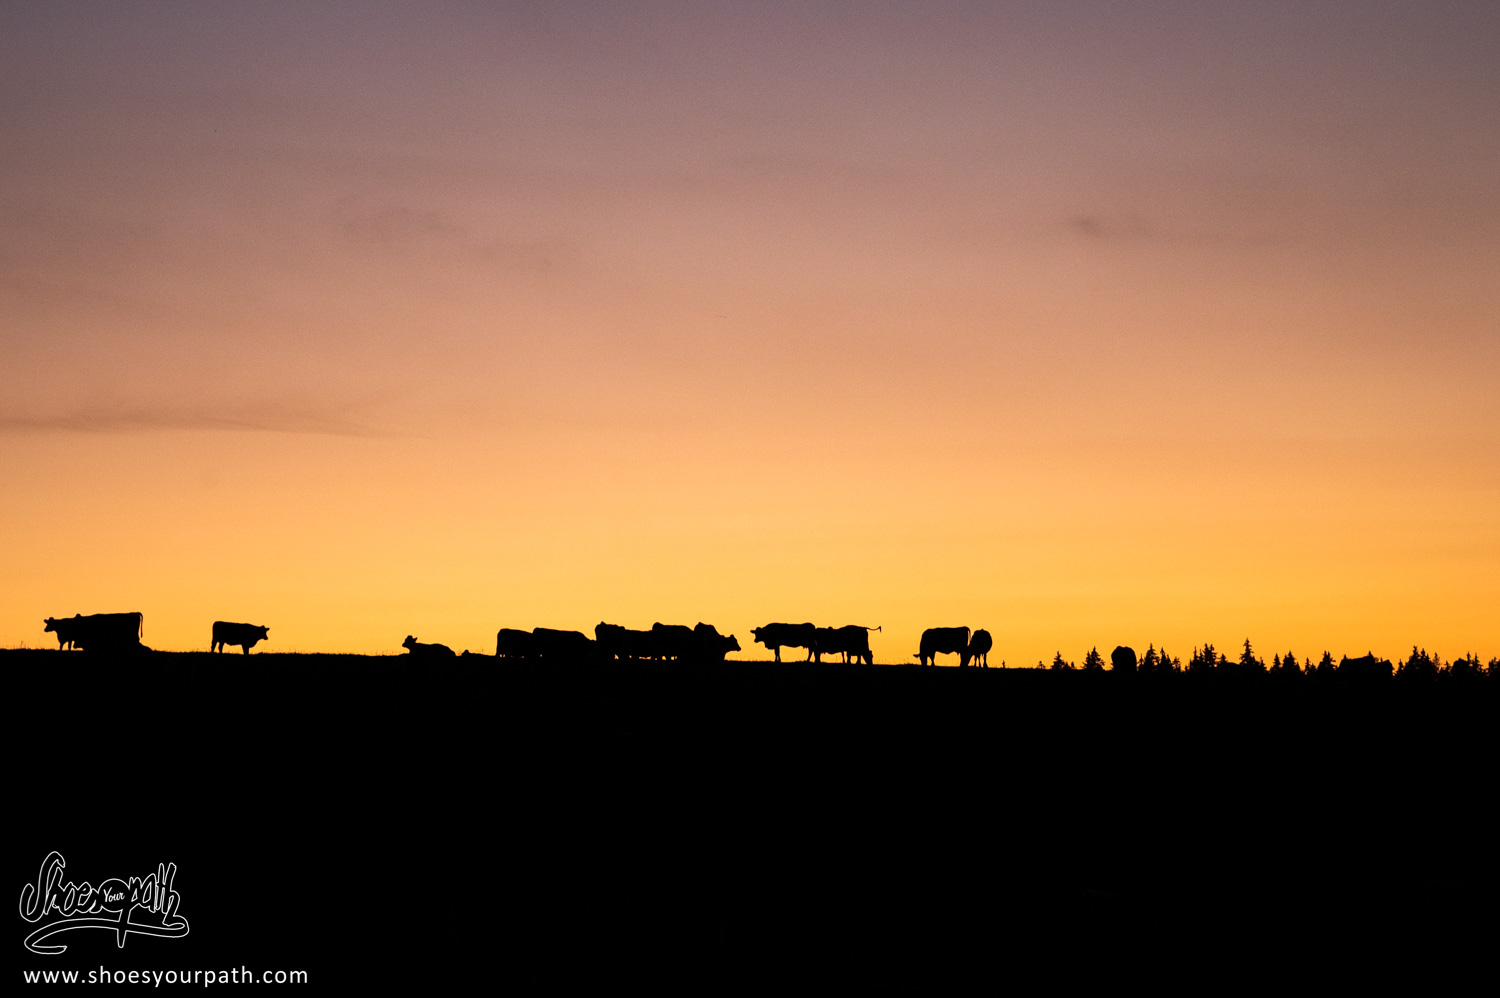 Sunset over the cattle's hill